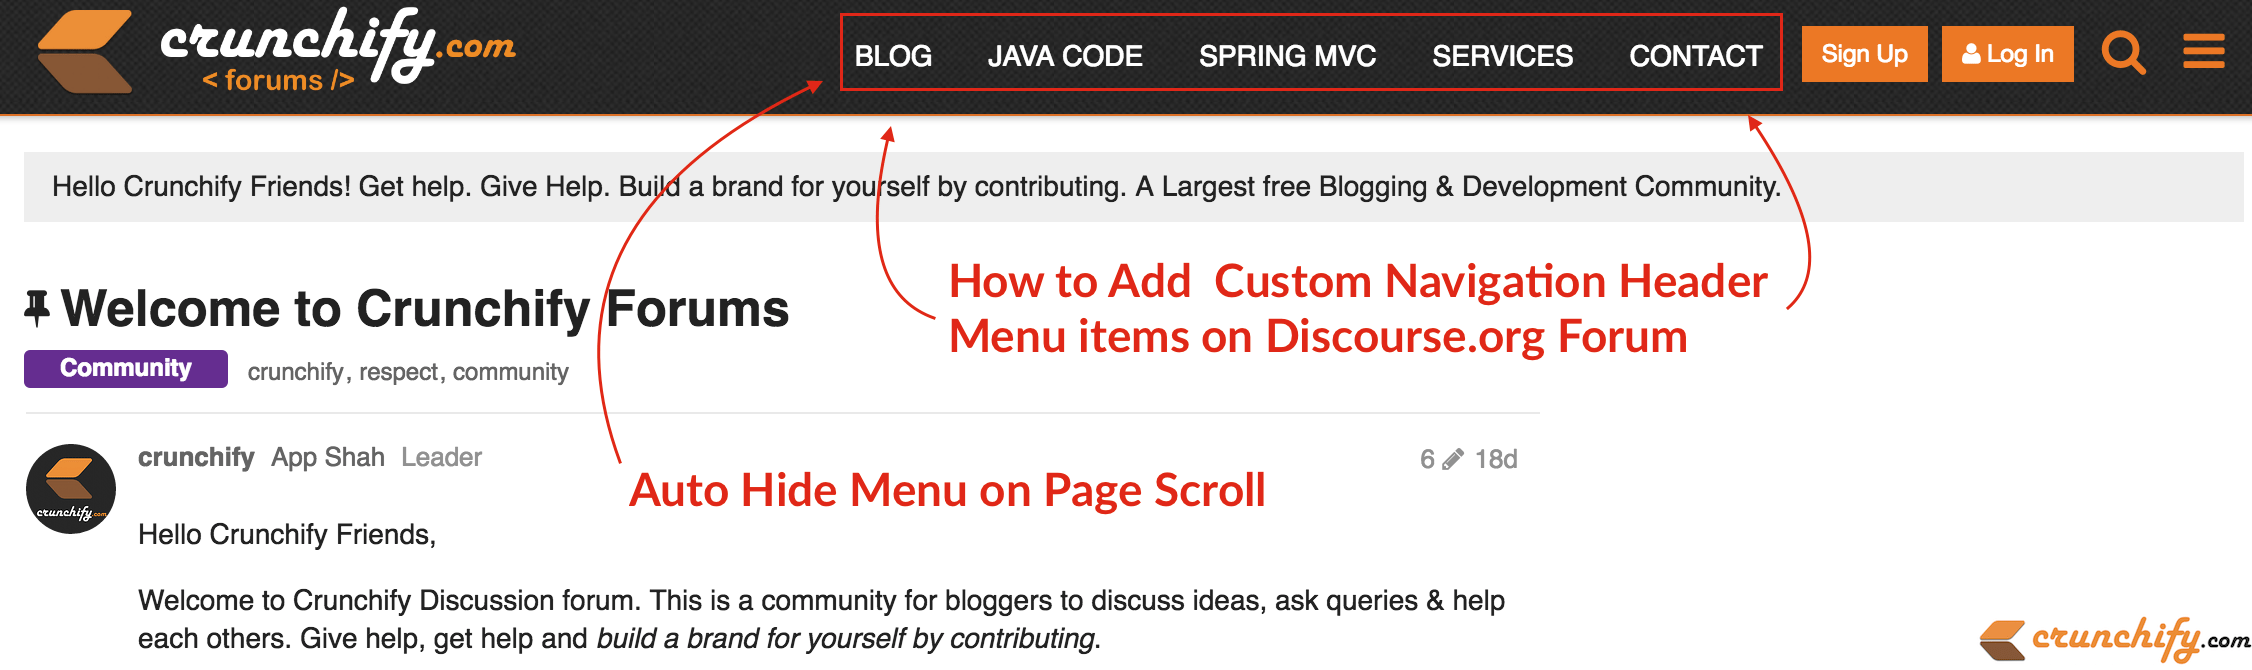 How to Add, Auto Hide Custom Navigation Header Menu items on Discourse.org Forum - Crunchify Tips